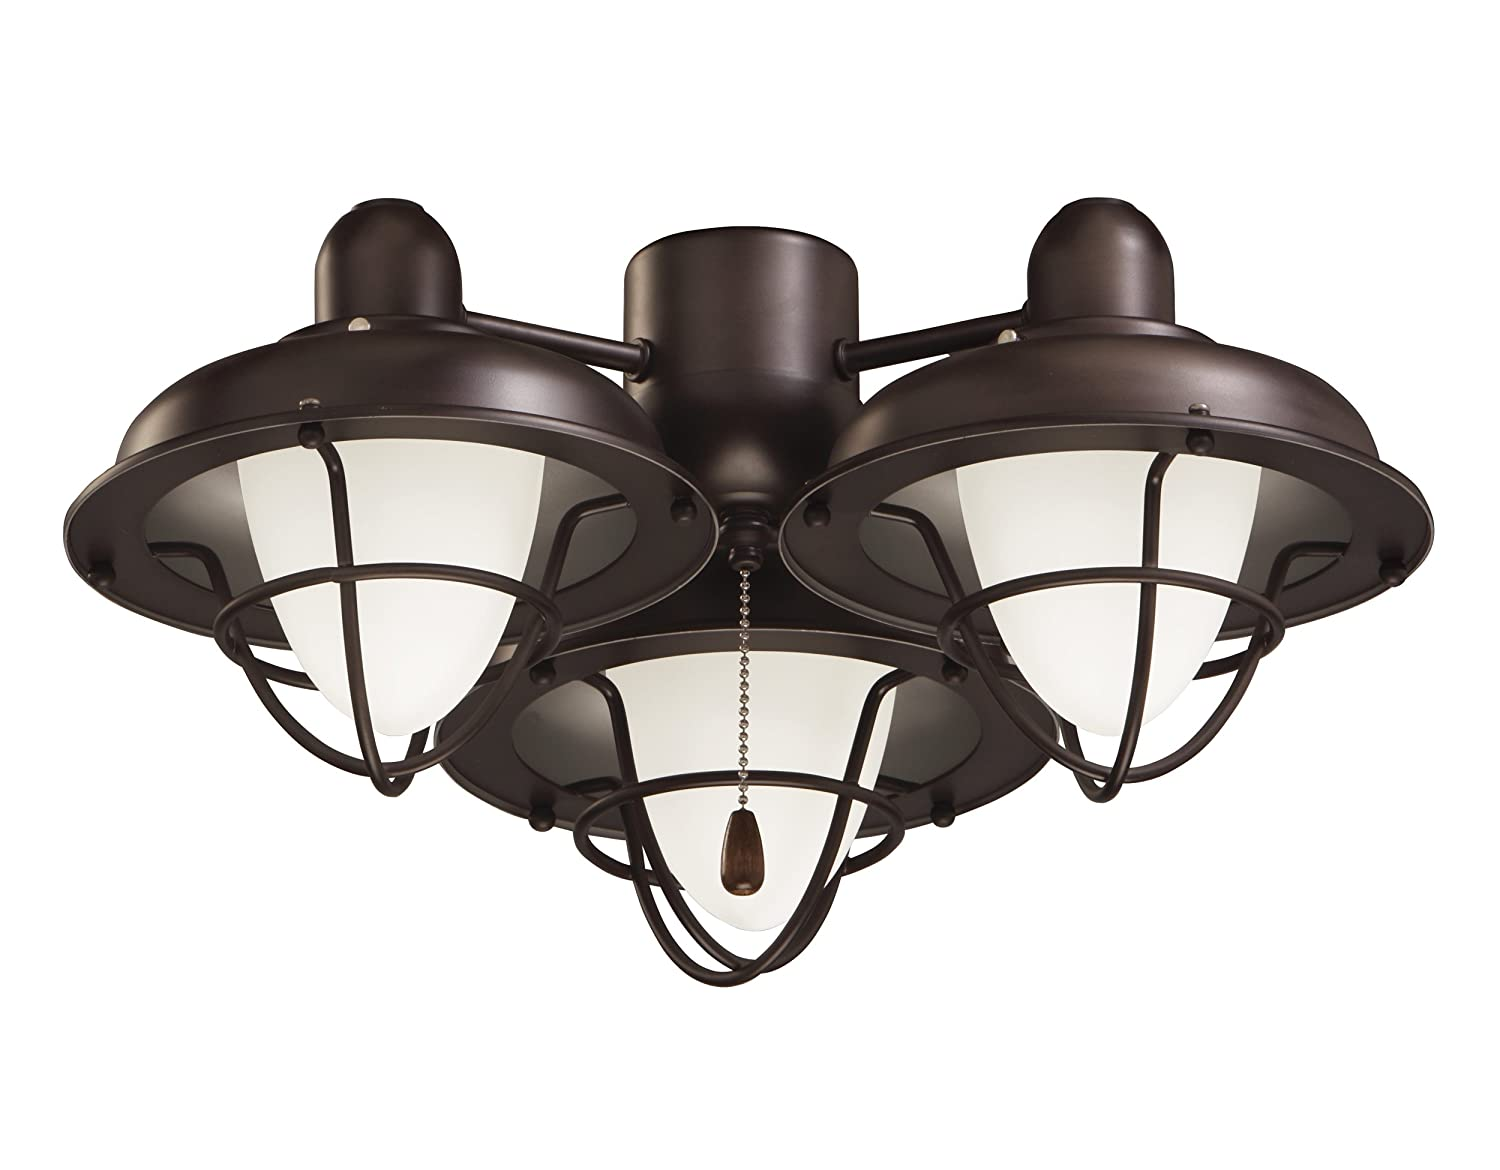 Emerson ceiling fan light fixtures lk40orb boardwalk cage ceiling emerson ceiling fan light fixtures lk40orb boardwalk cage ceiling fan light kits medium base cfl light kit oil rubbed bronze ceiling lamp ceiling fans arubaitofo Choice Image